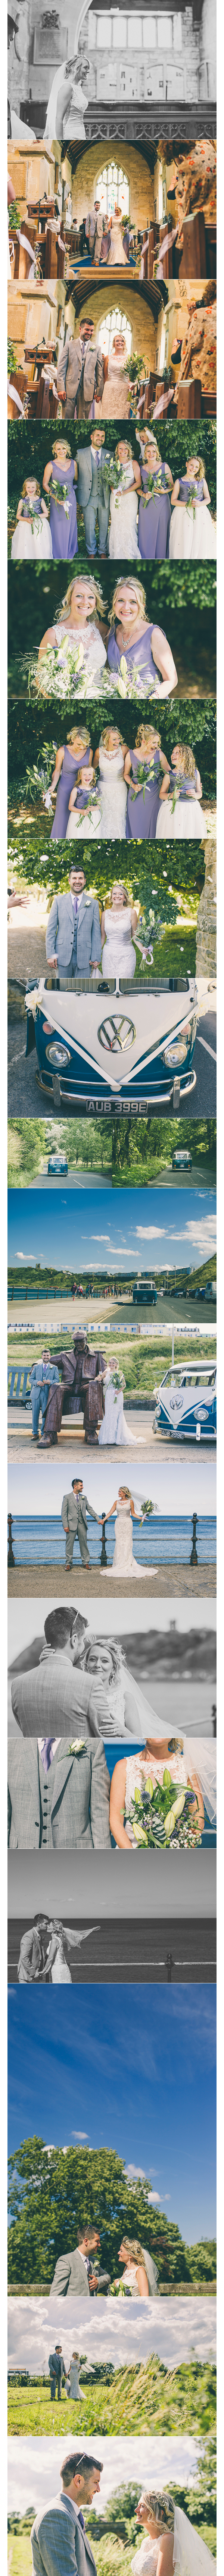 NeilJacksonPhotographicScarboroughYorkYorkshireWeddingPhotographerLou&ChristianHacknessChurchHacknessVillageHallWeddingScarboroughBlog3